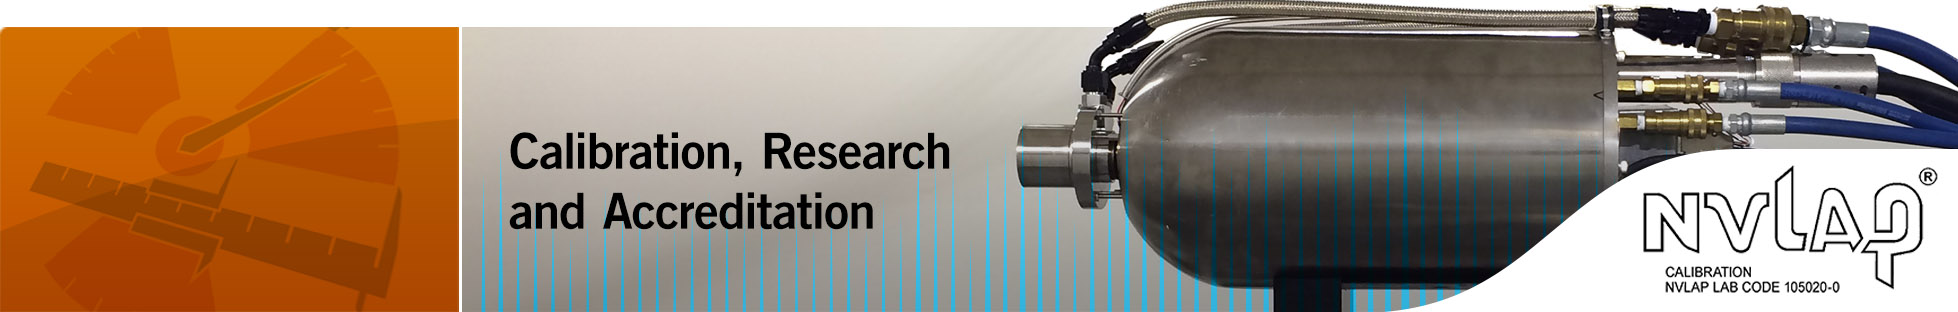 Calibration Research & Accreditation